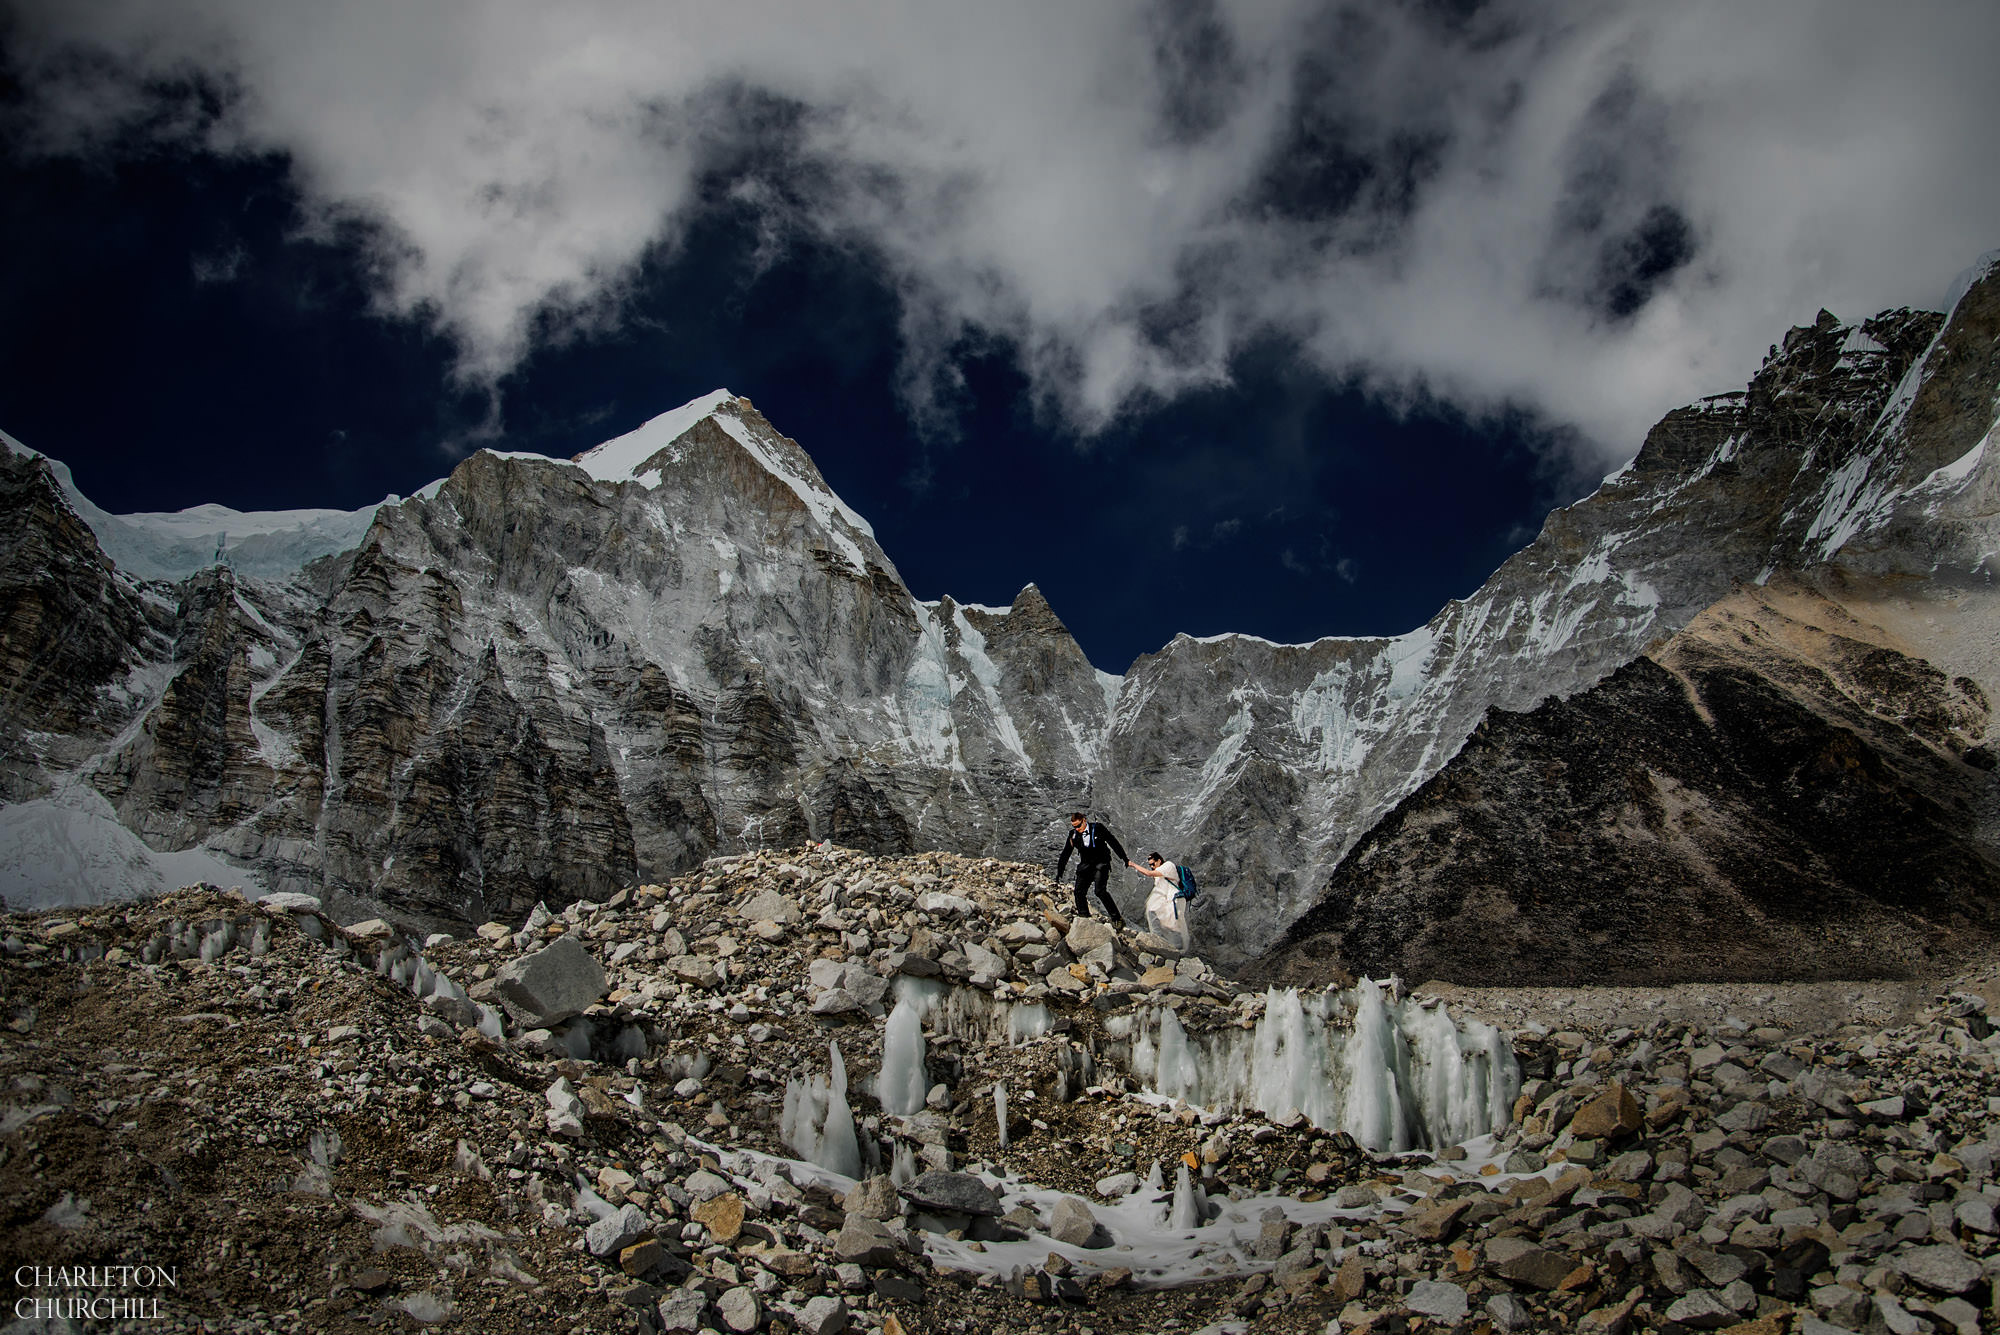 wedding couple hiking in wedding dress and tuxedo on glacier of khumbu of base camp everest trek